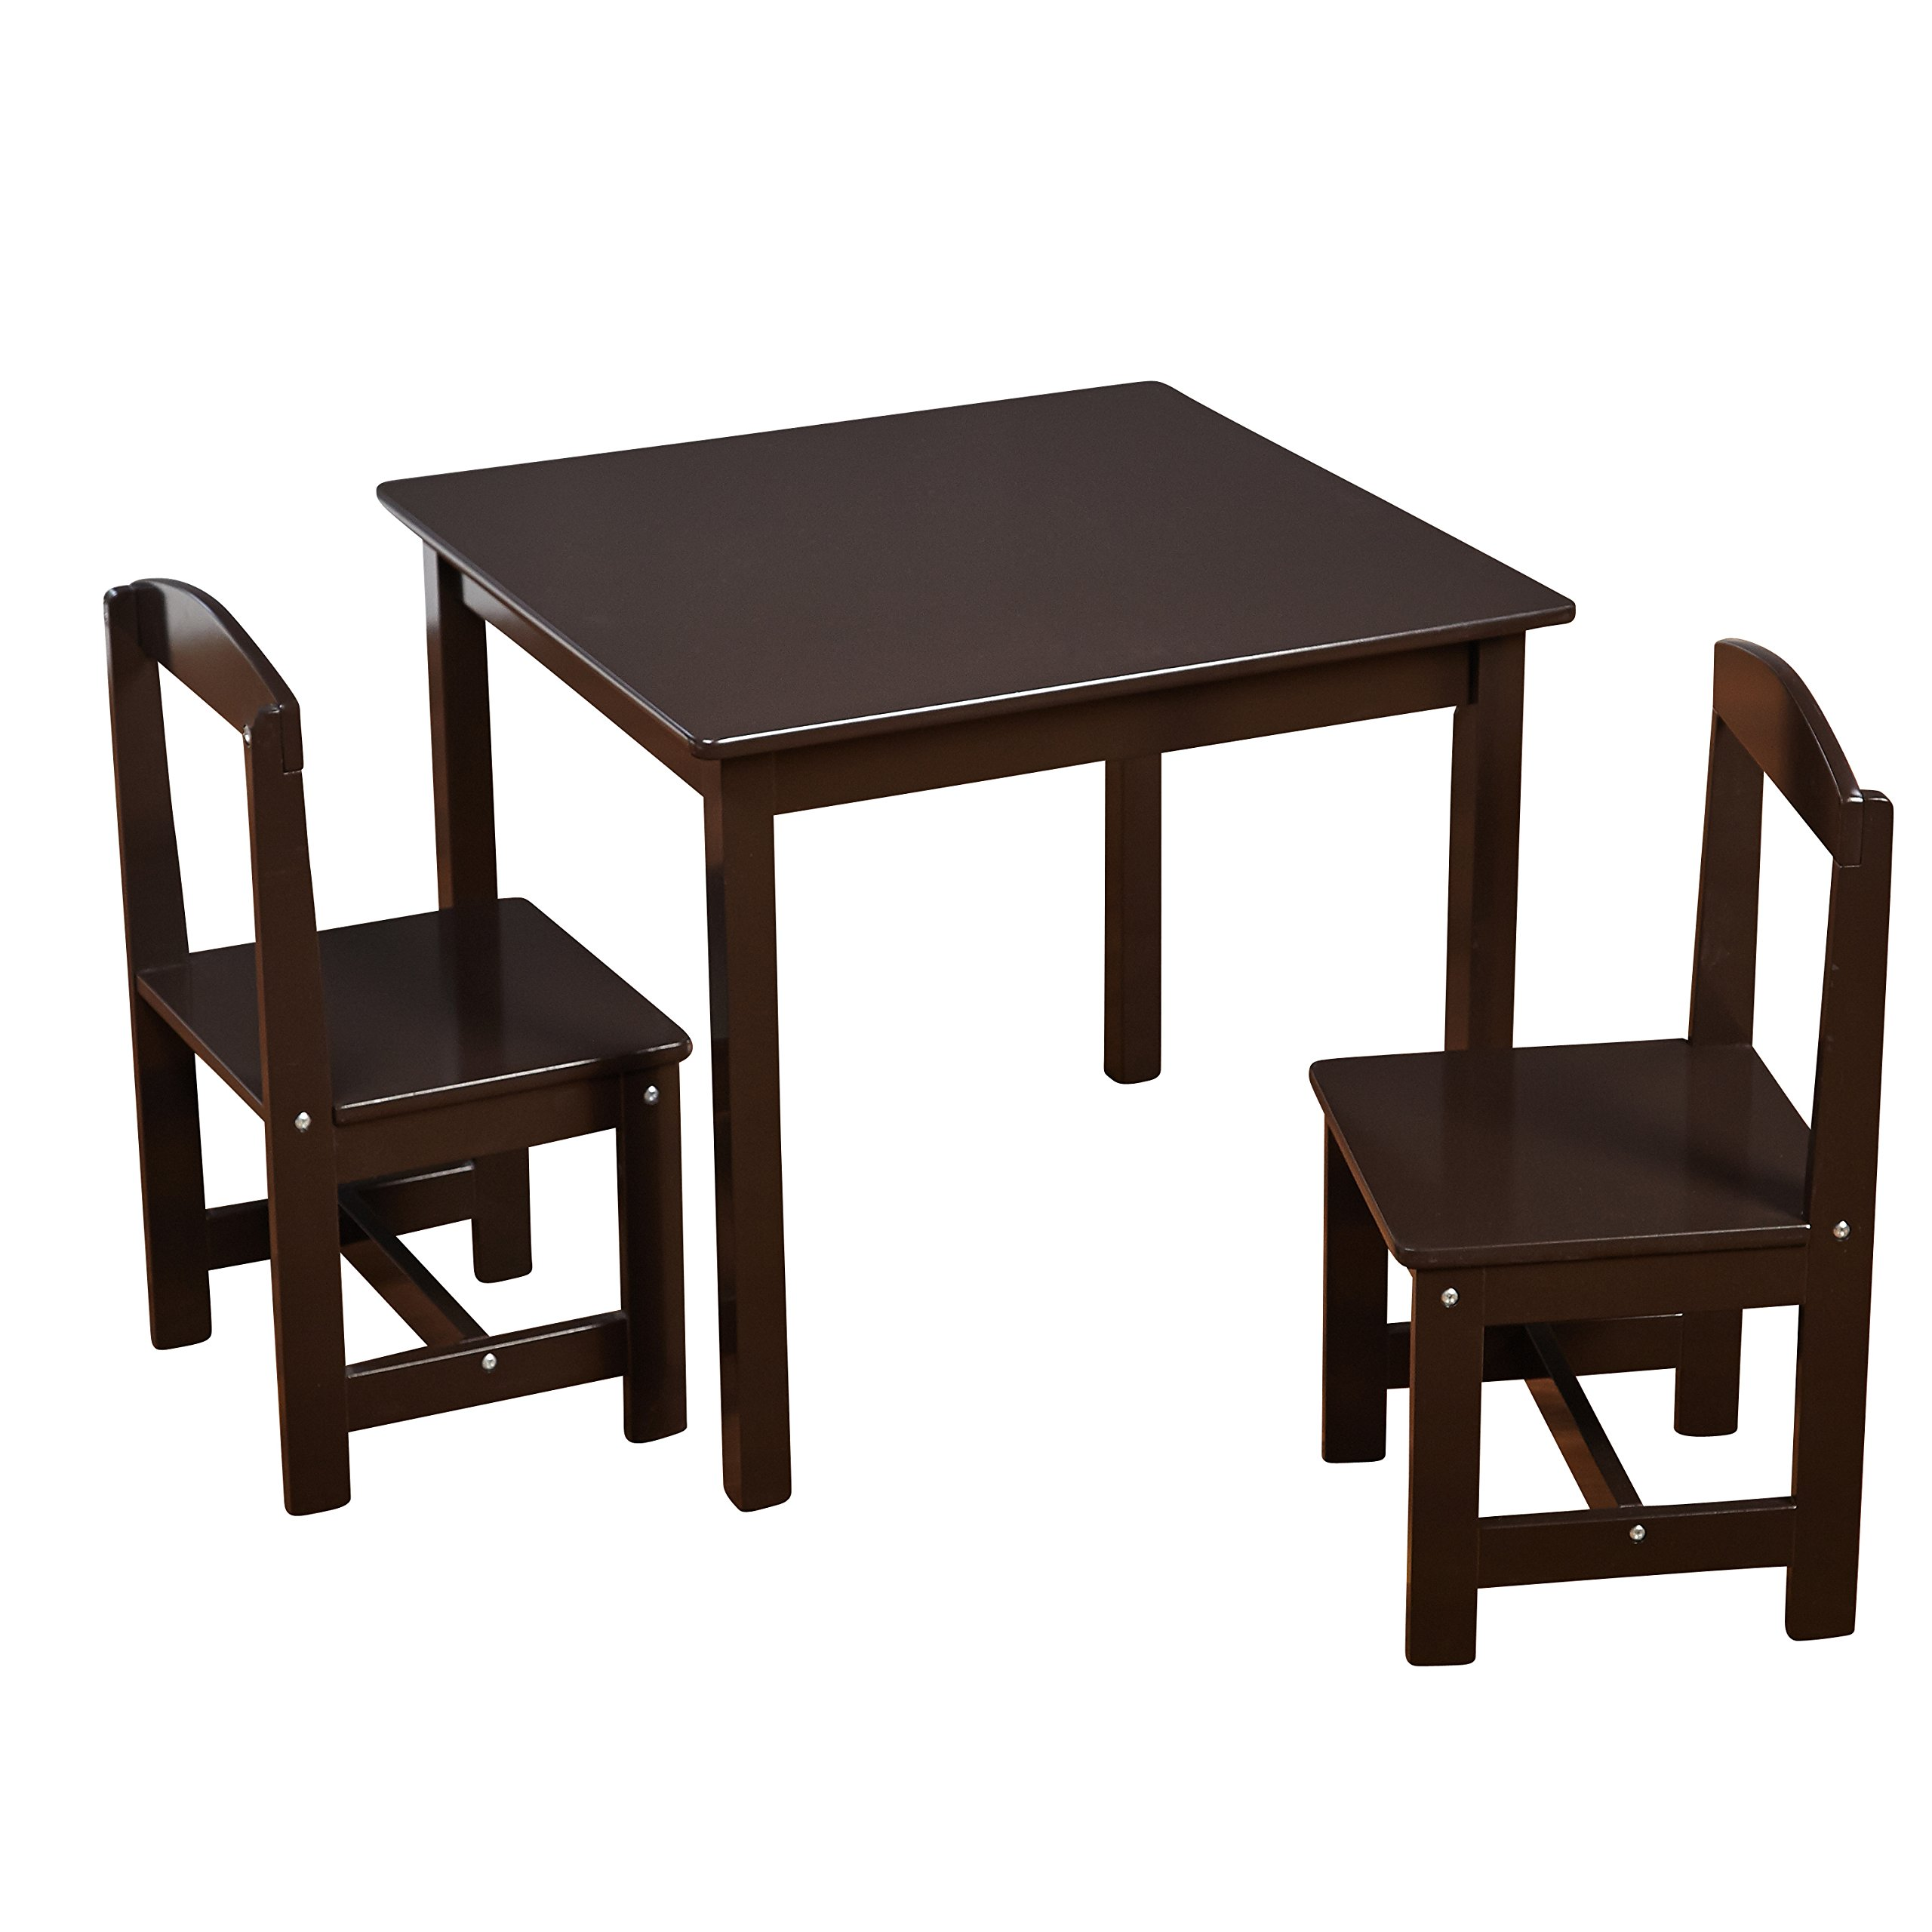 Target Marketing Systems 91120ESP Hayden Kids Table and Chairs, Espresso